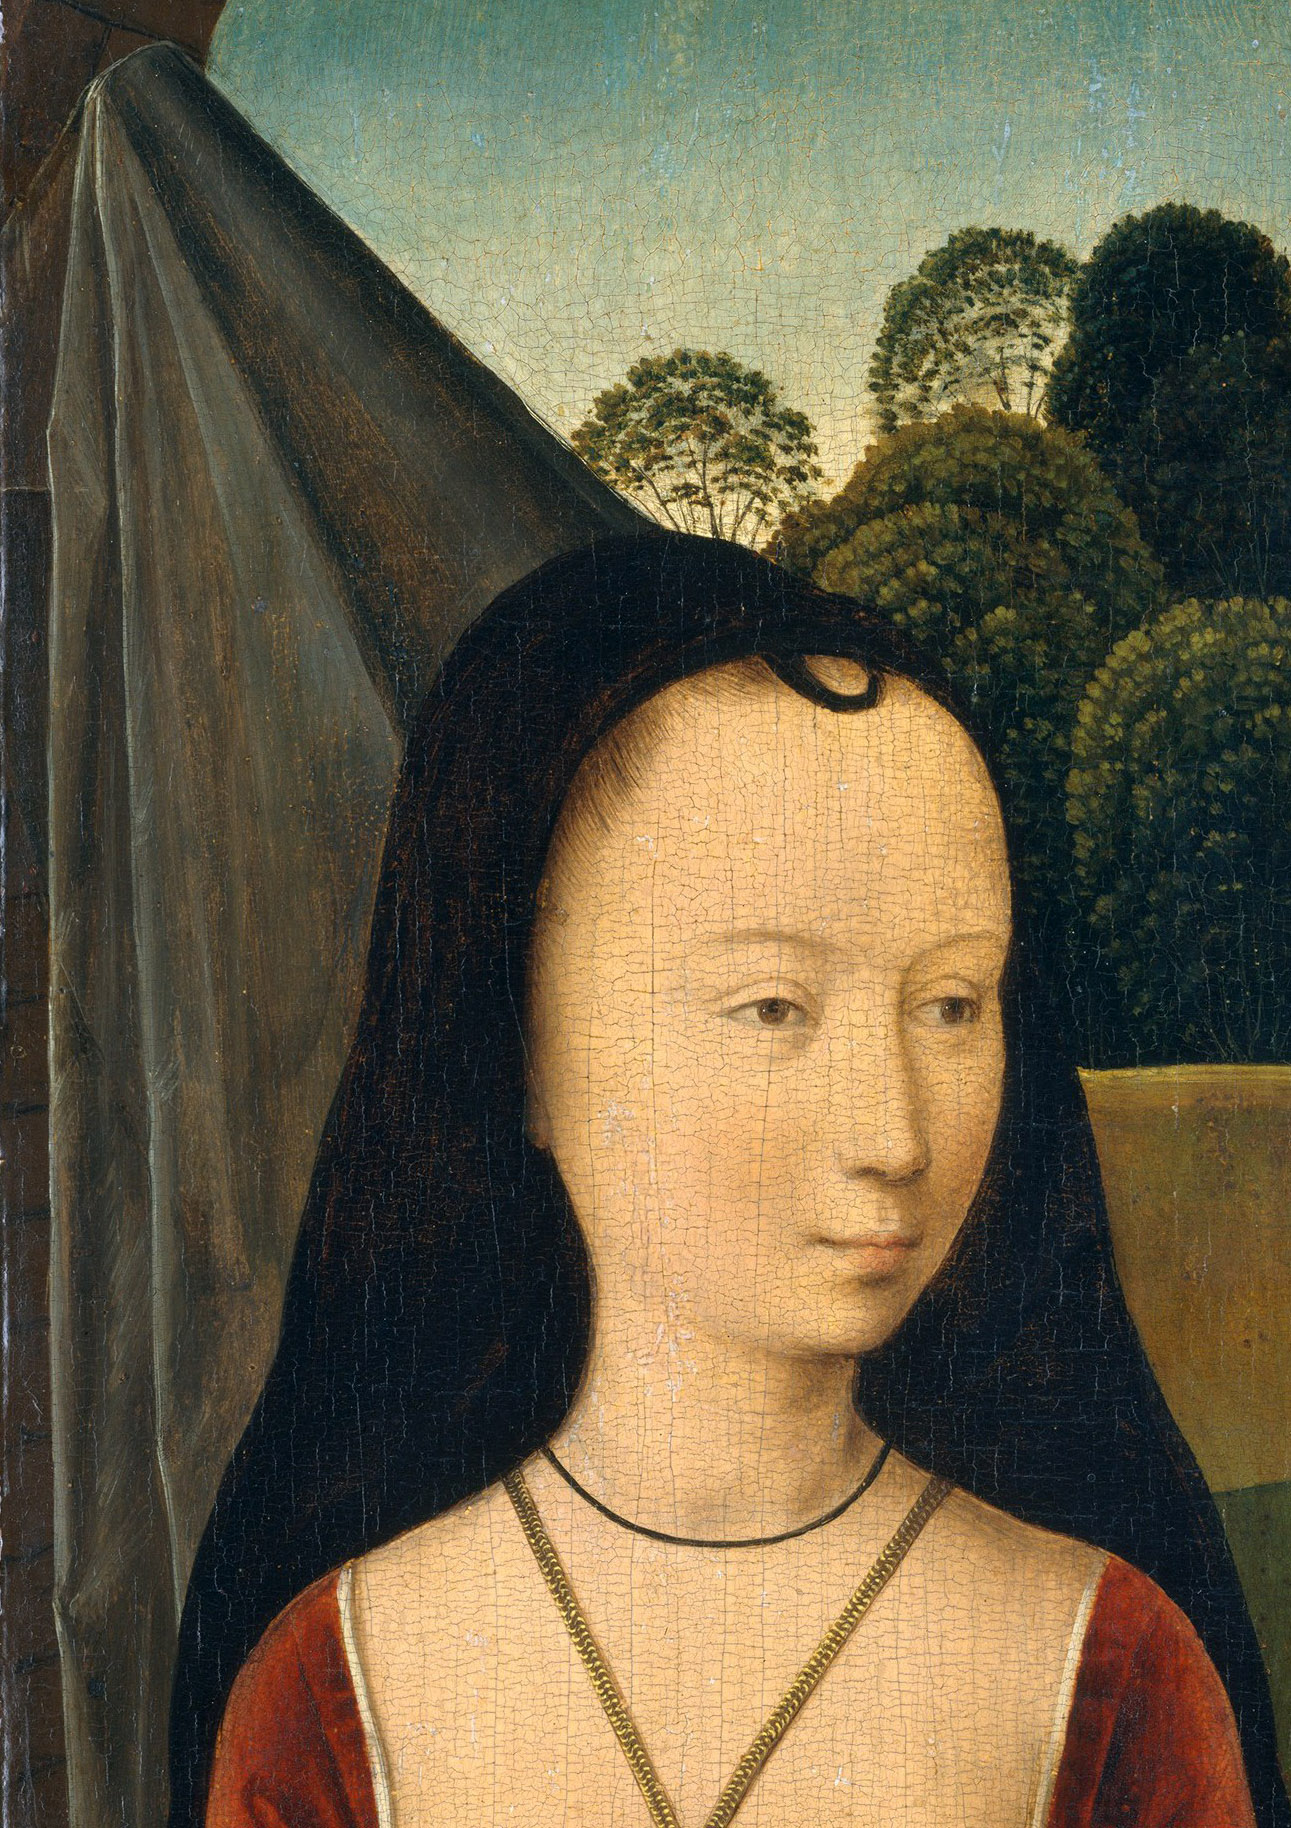 Hans_Memling_-_Diptych_with_the_Allegory_of_True_Love_(detail)_-_WGA14950.jpg